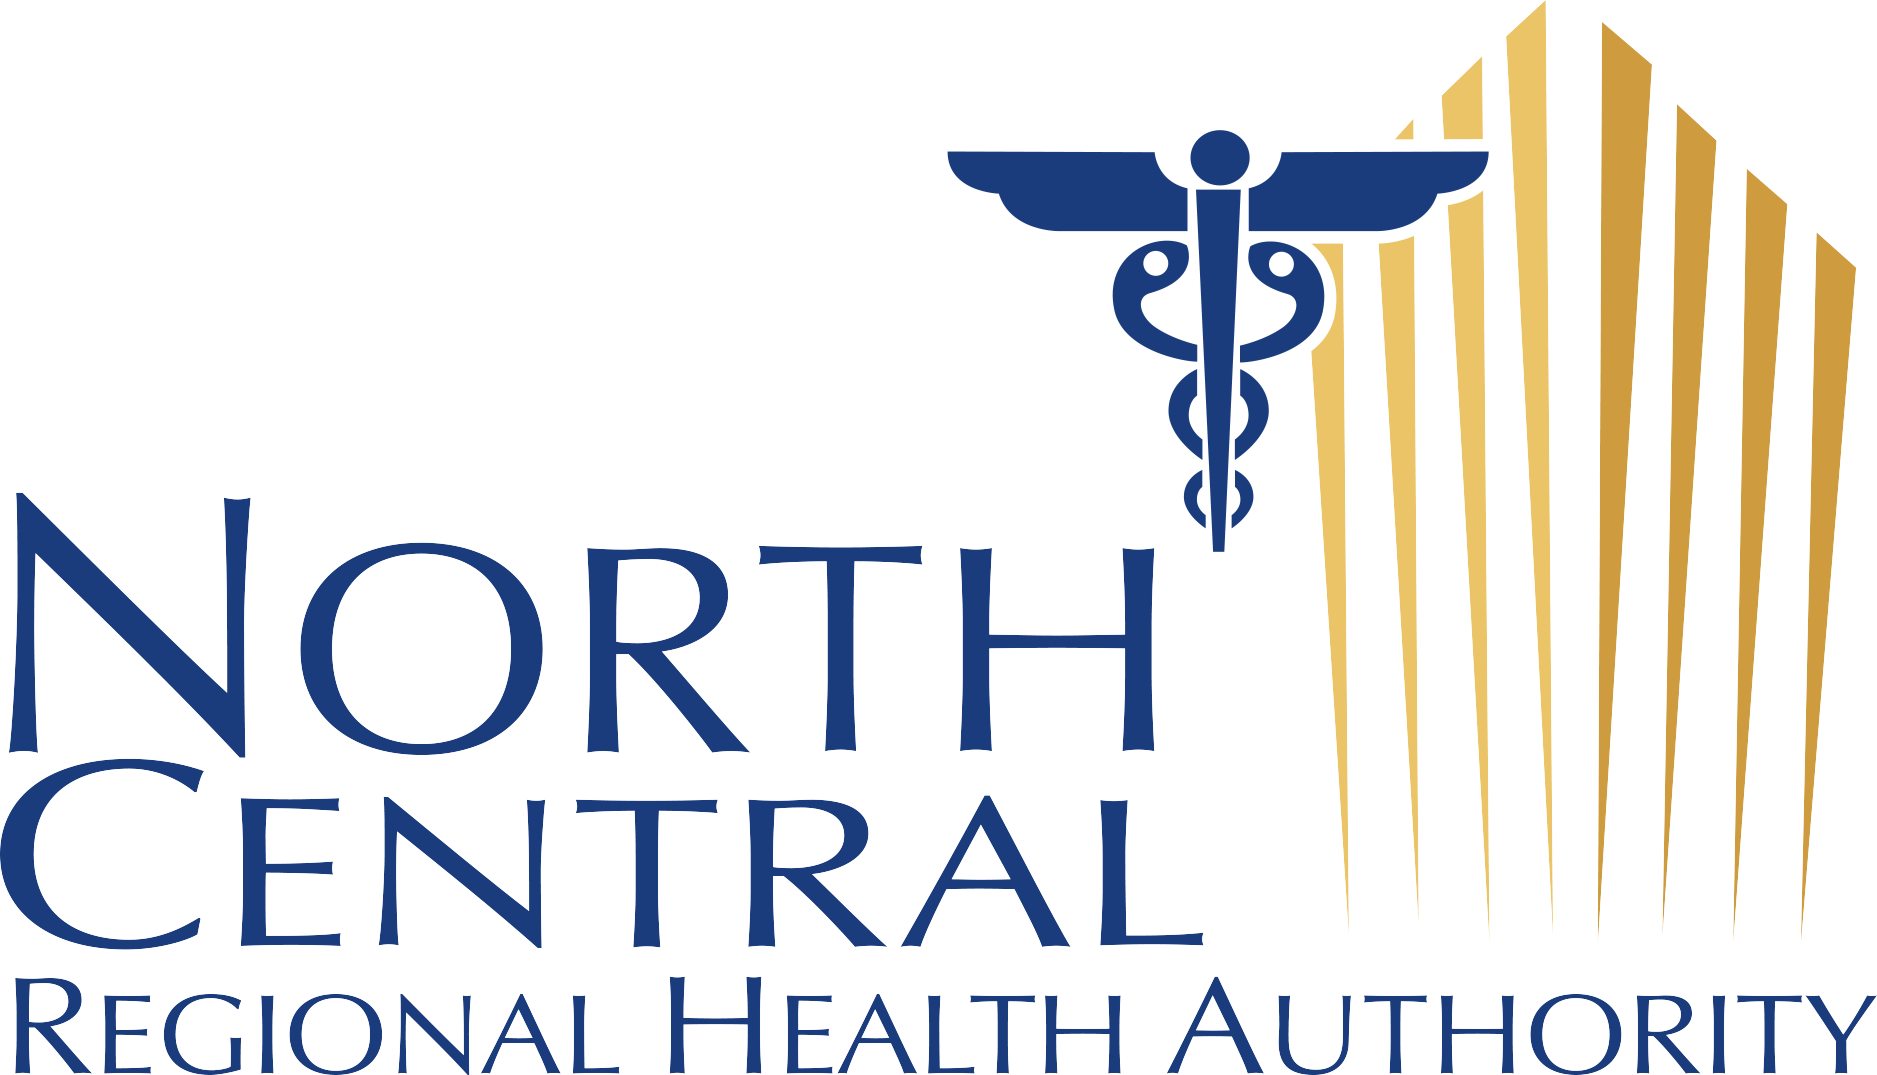 North Central Regional Health AuthorityNCRHA